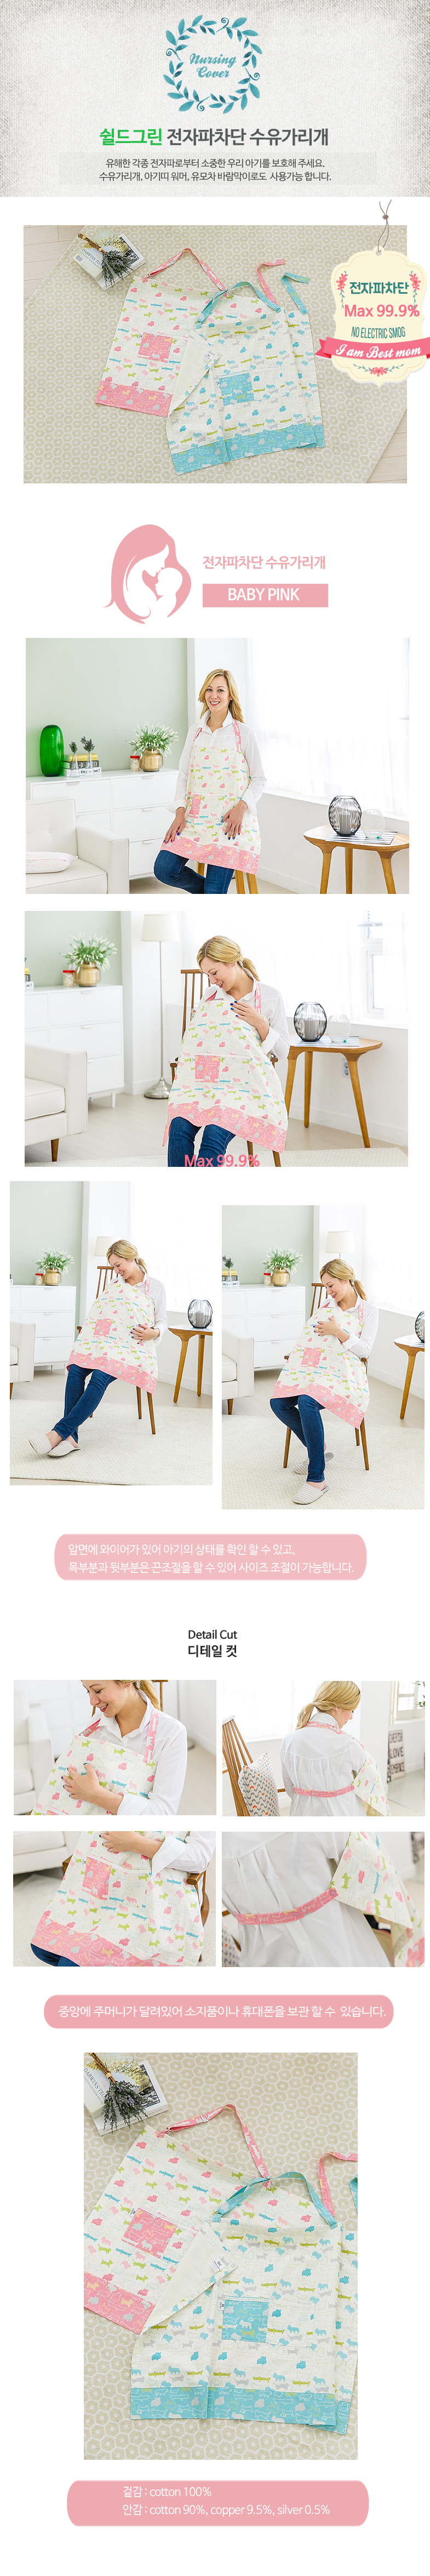 [ ShieldGreen ] Shieldgreen Anti Radiation/ EMF Shielding Nursing Cover (Pink/Blue)